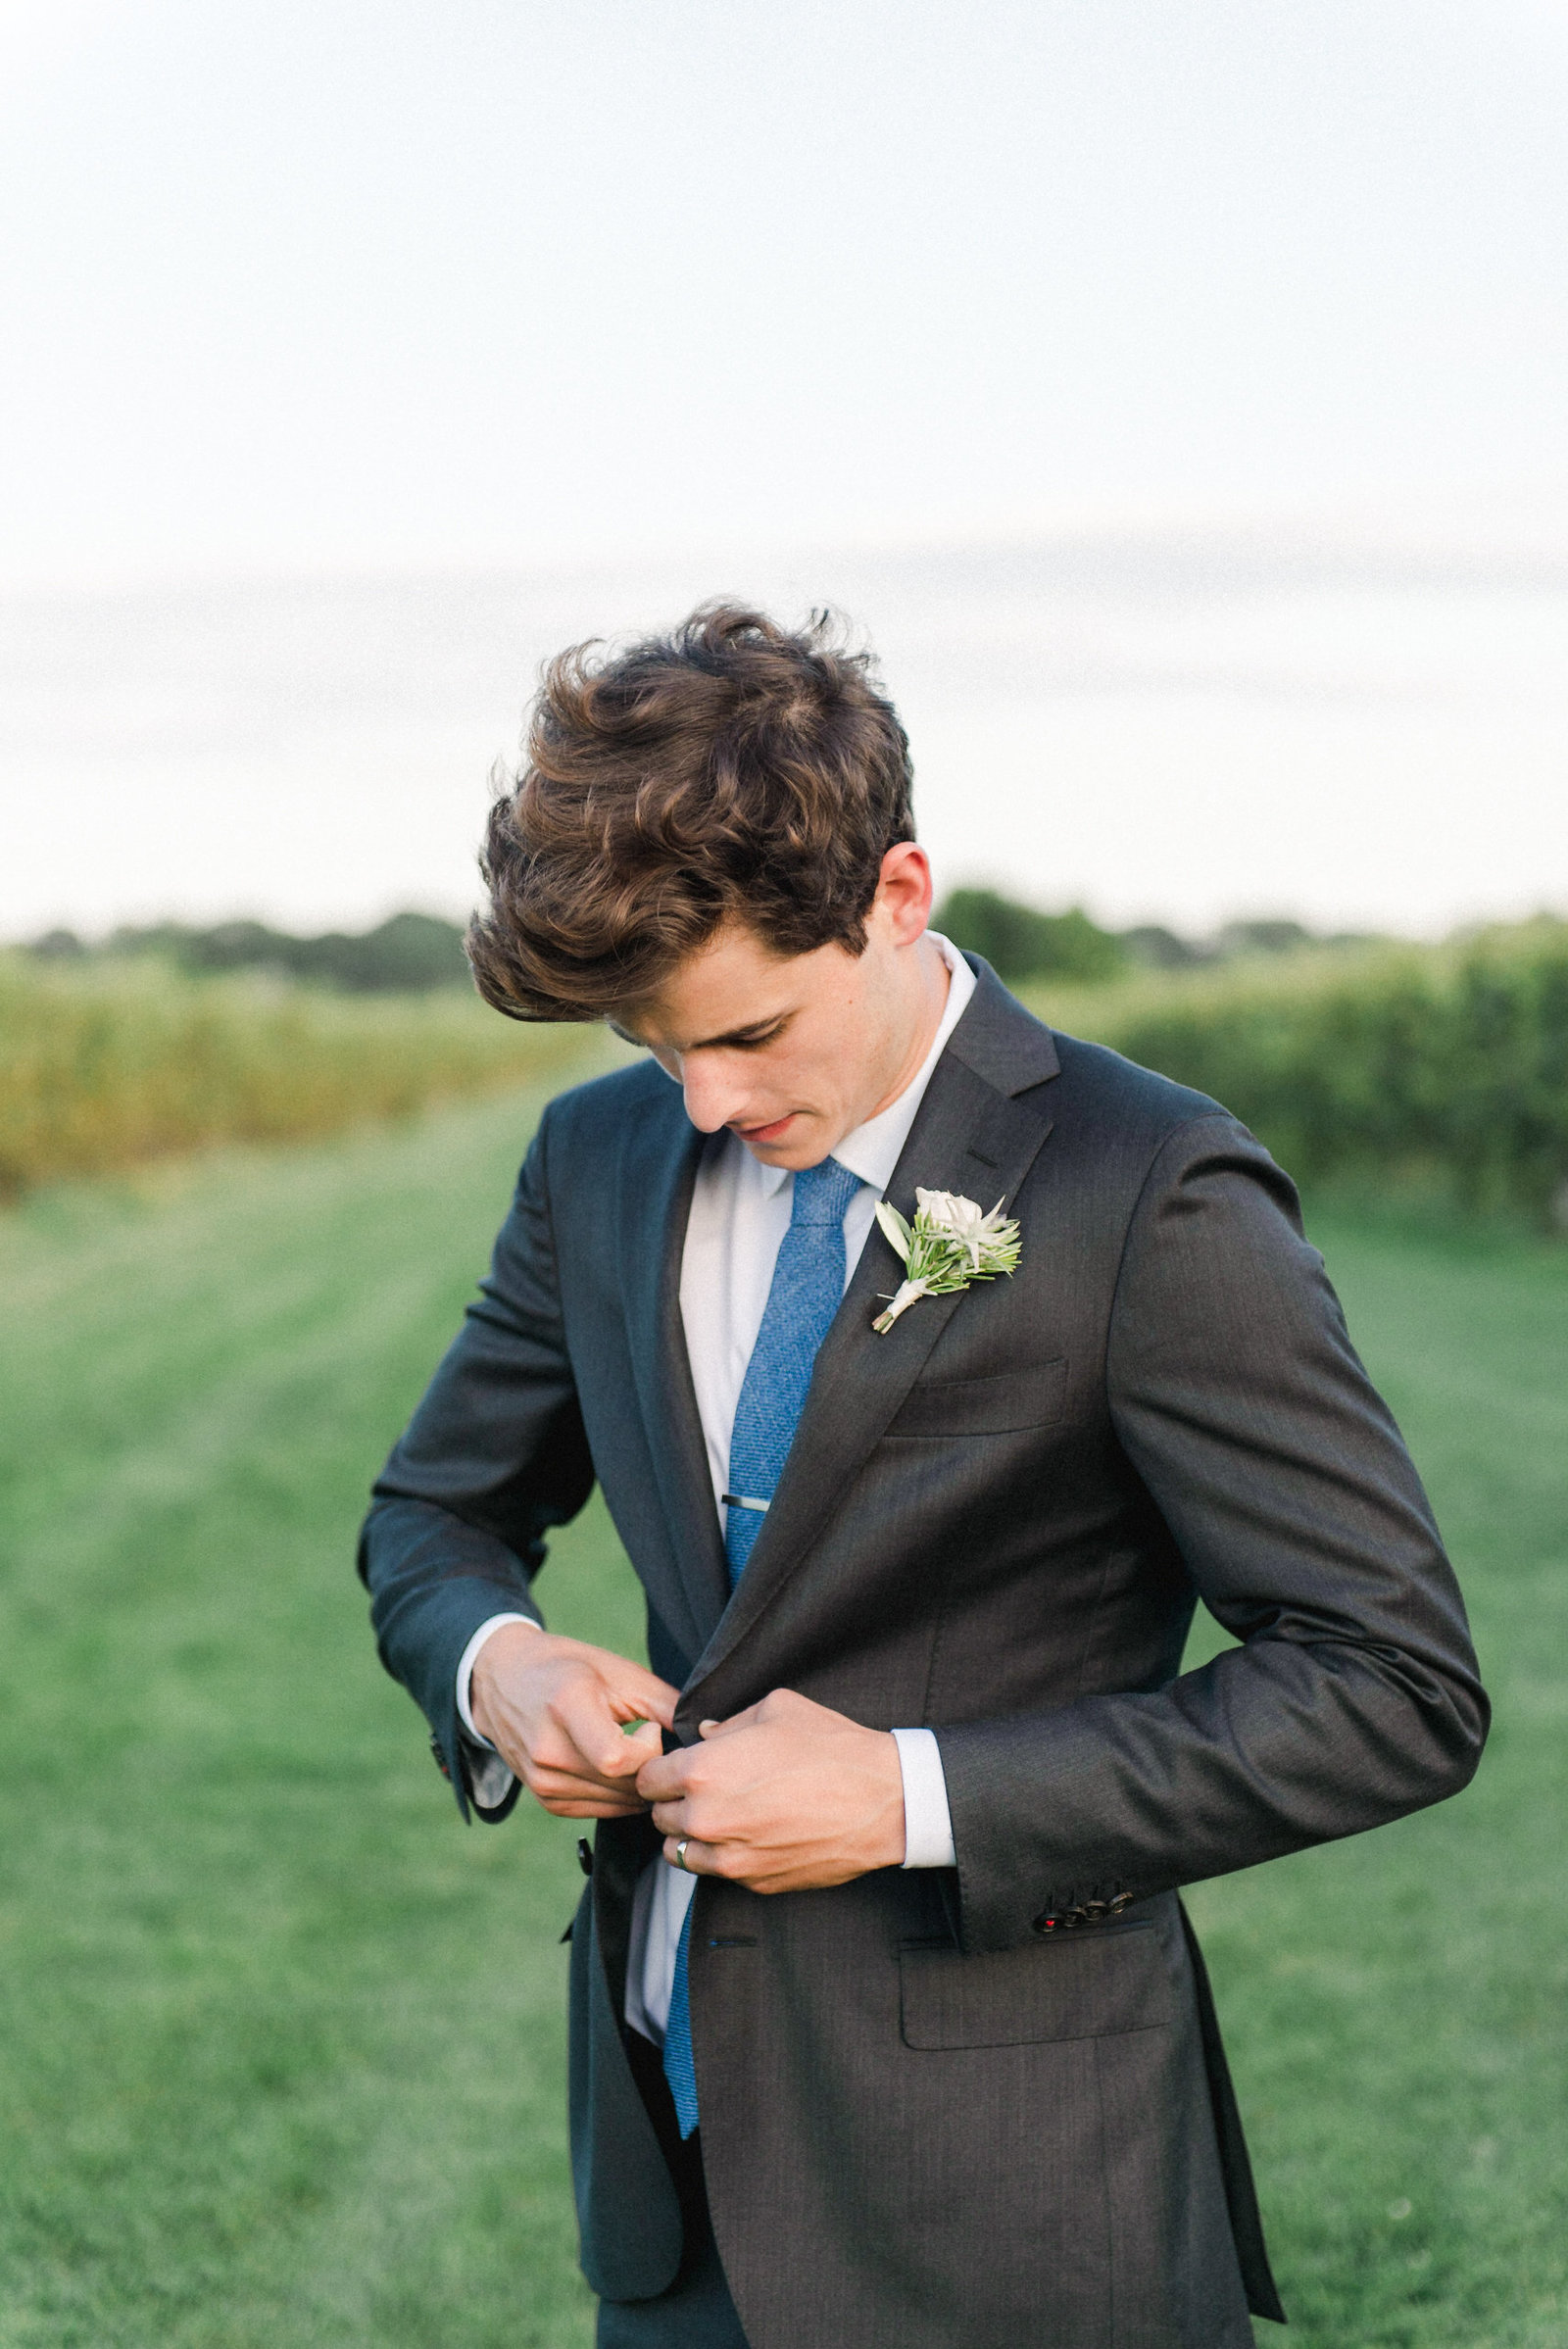 Groom Fashion Gray Suit_Saltwater Farm Vineyard Wedding 2